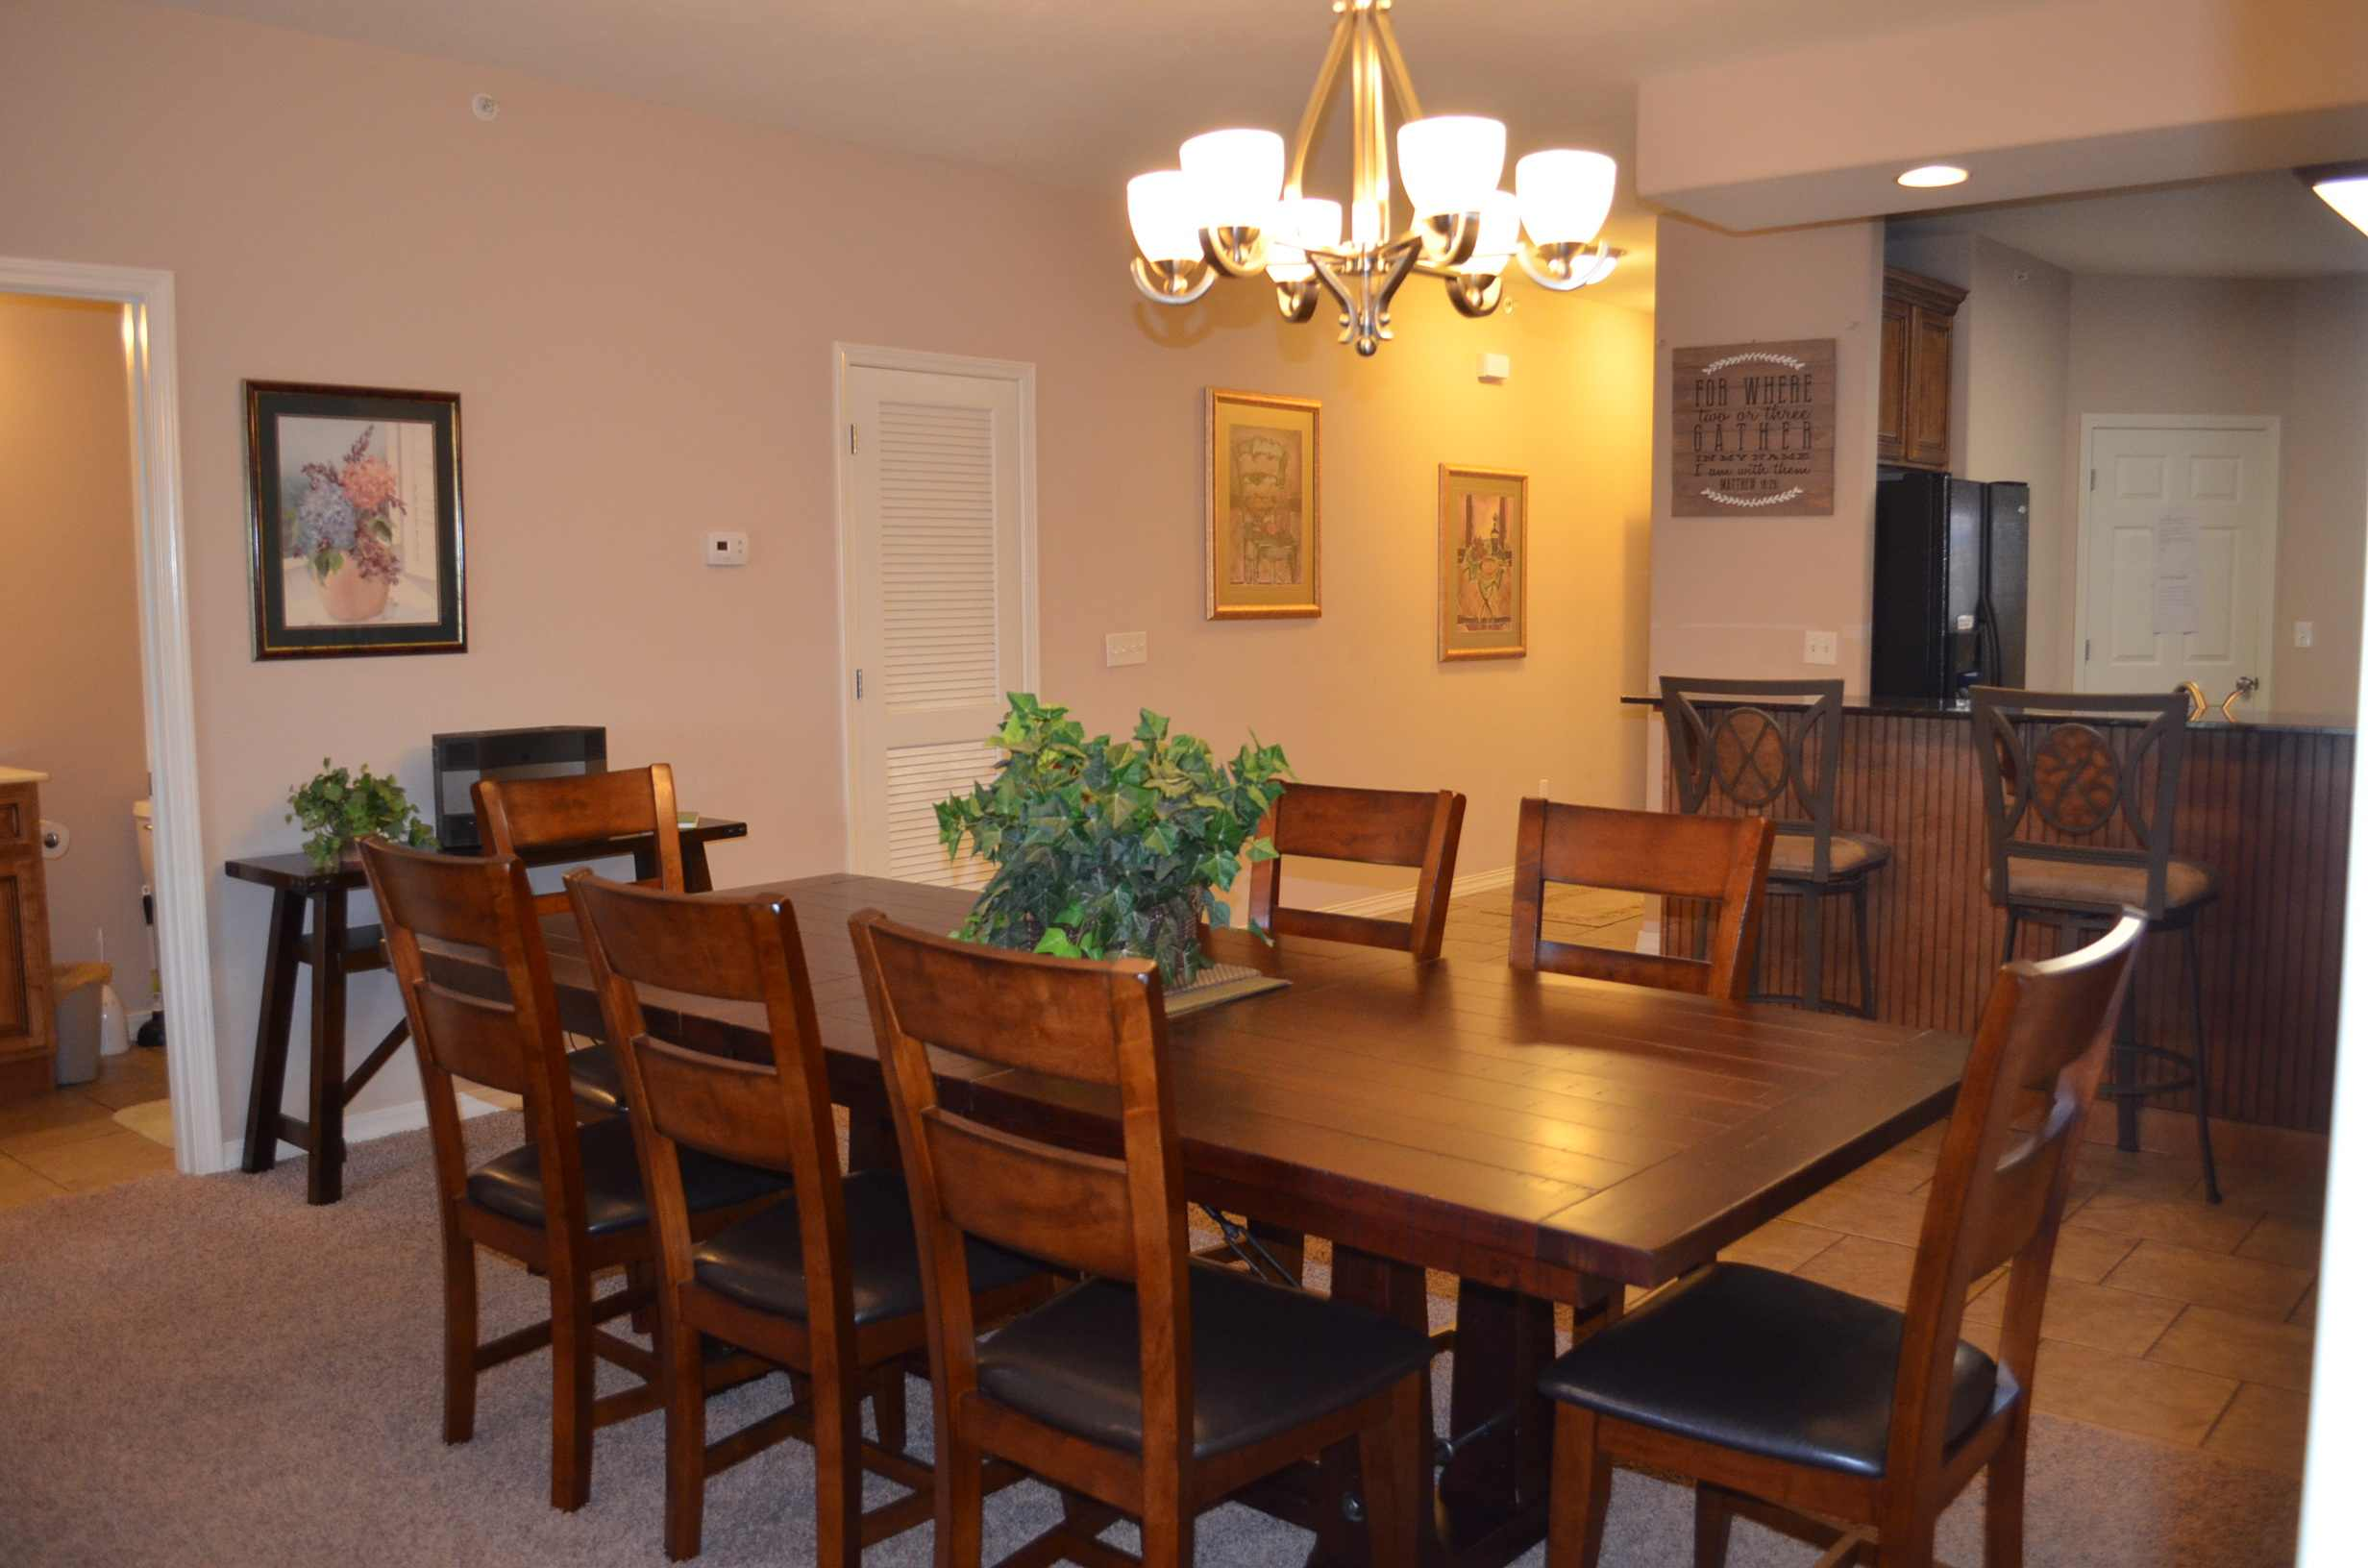 8 person dining table